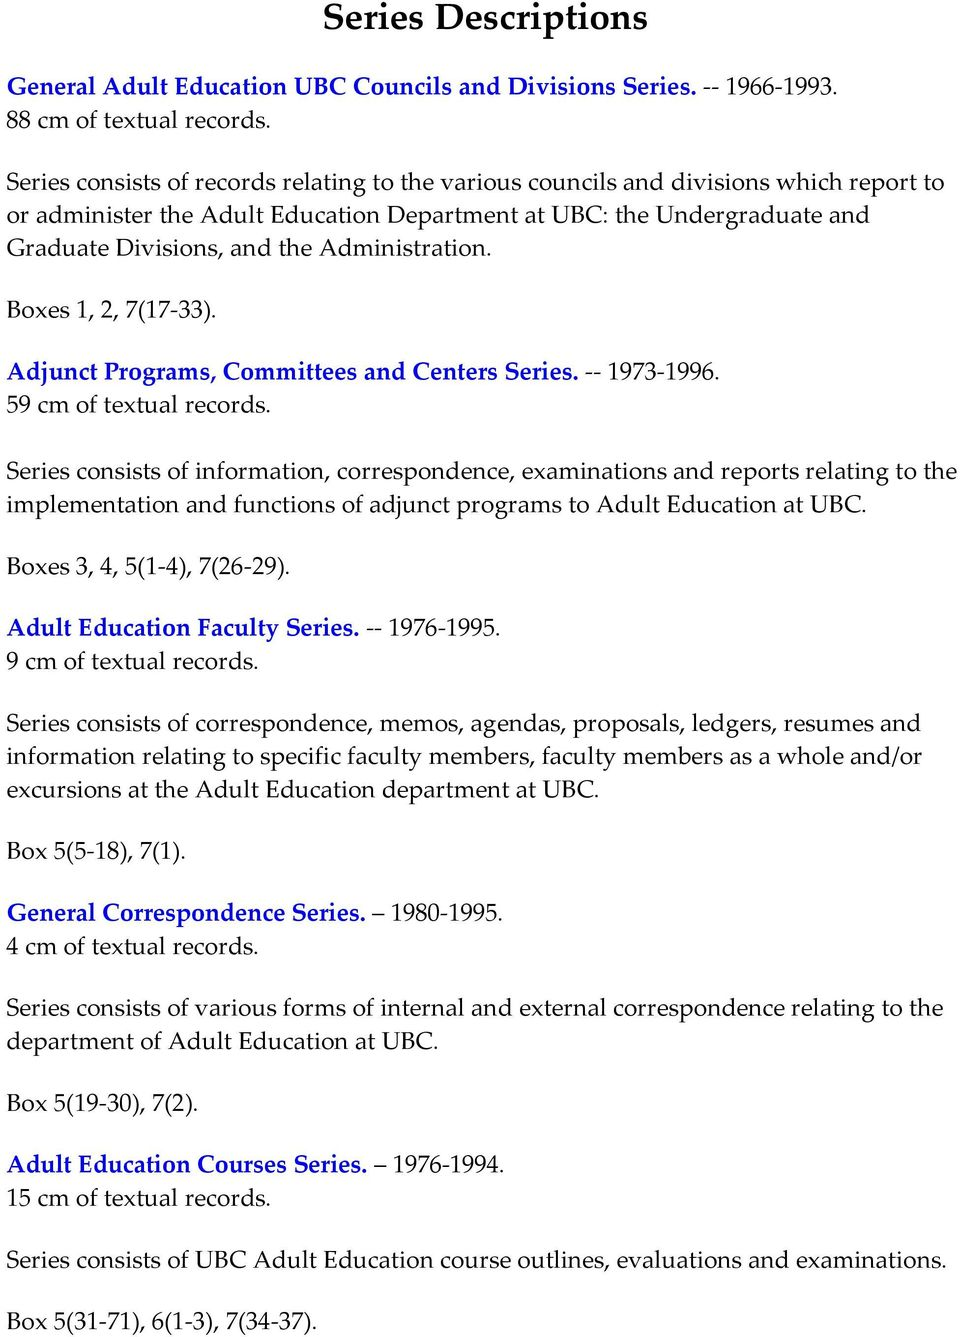 Administration. Boxes 1, 2, 7(17-33). Adjunct Programs, Committees and Centers Series. -- 1973-1996. 59 cm of textual records.